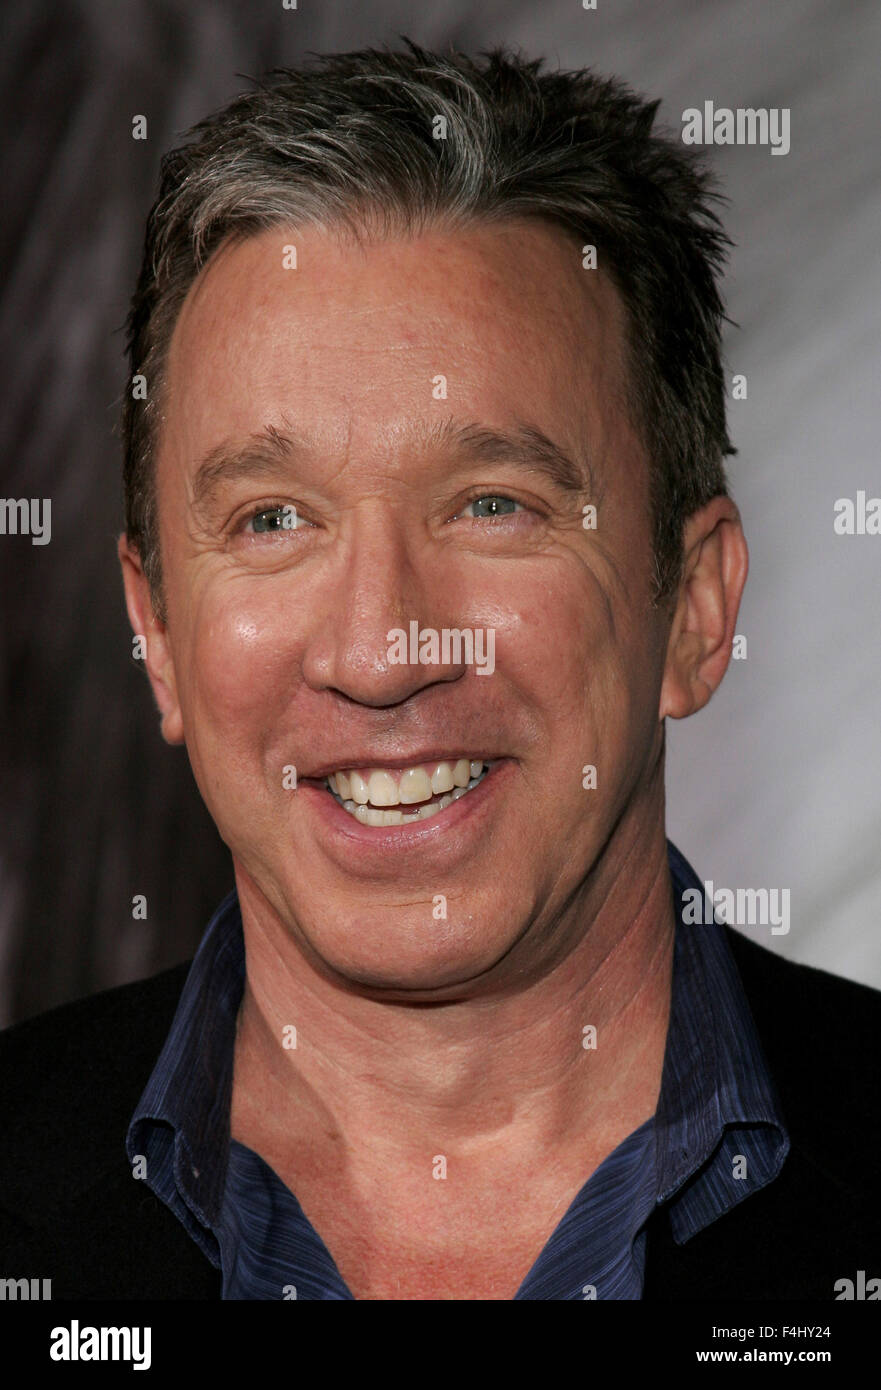 HOLLYWOOD, CALIFORNIA. March 7, 2006. Tim Allen attends the Walt Disney's World Premiere of 'The Shaggy - Stock Image